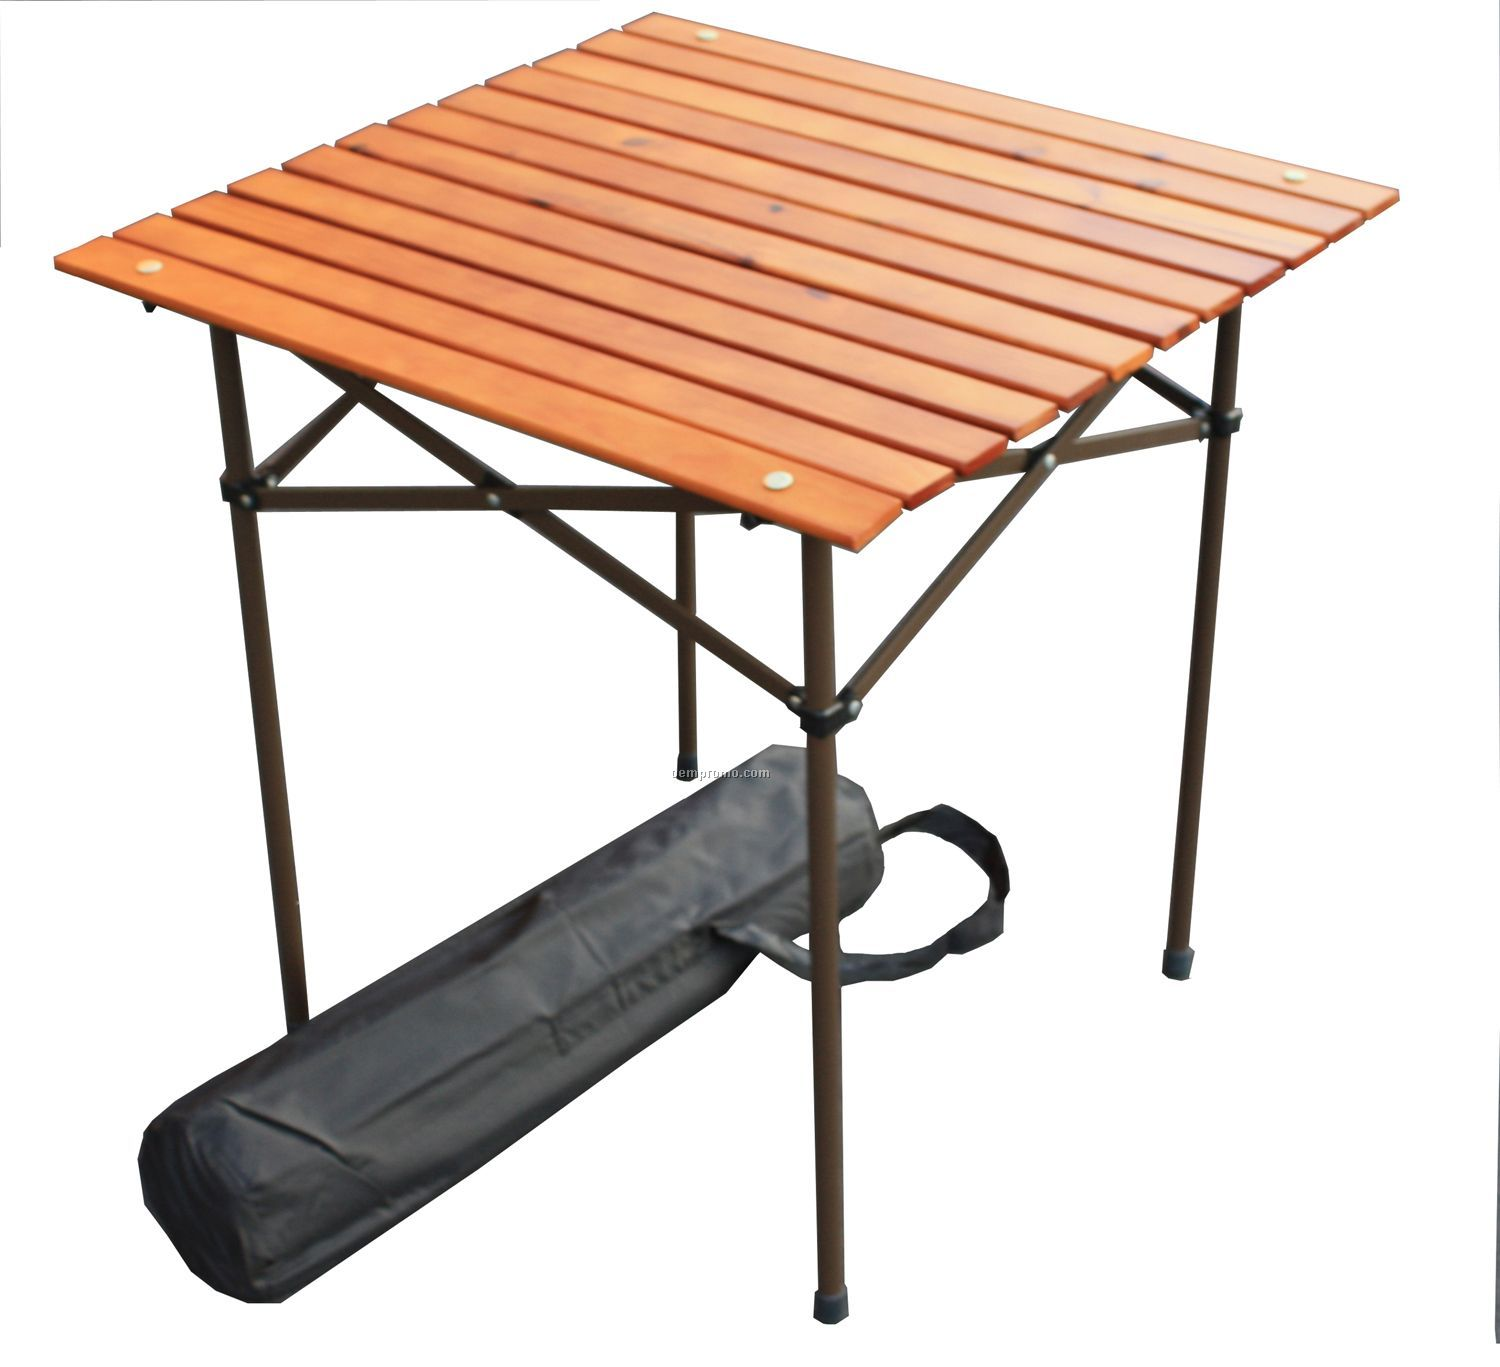 wood portable table in a bag 27 x27 x27 china wholesale wood portable table in a bag 27 x27. Black Bedroom Furniture Sets. Home Design Ideas